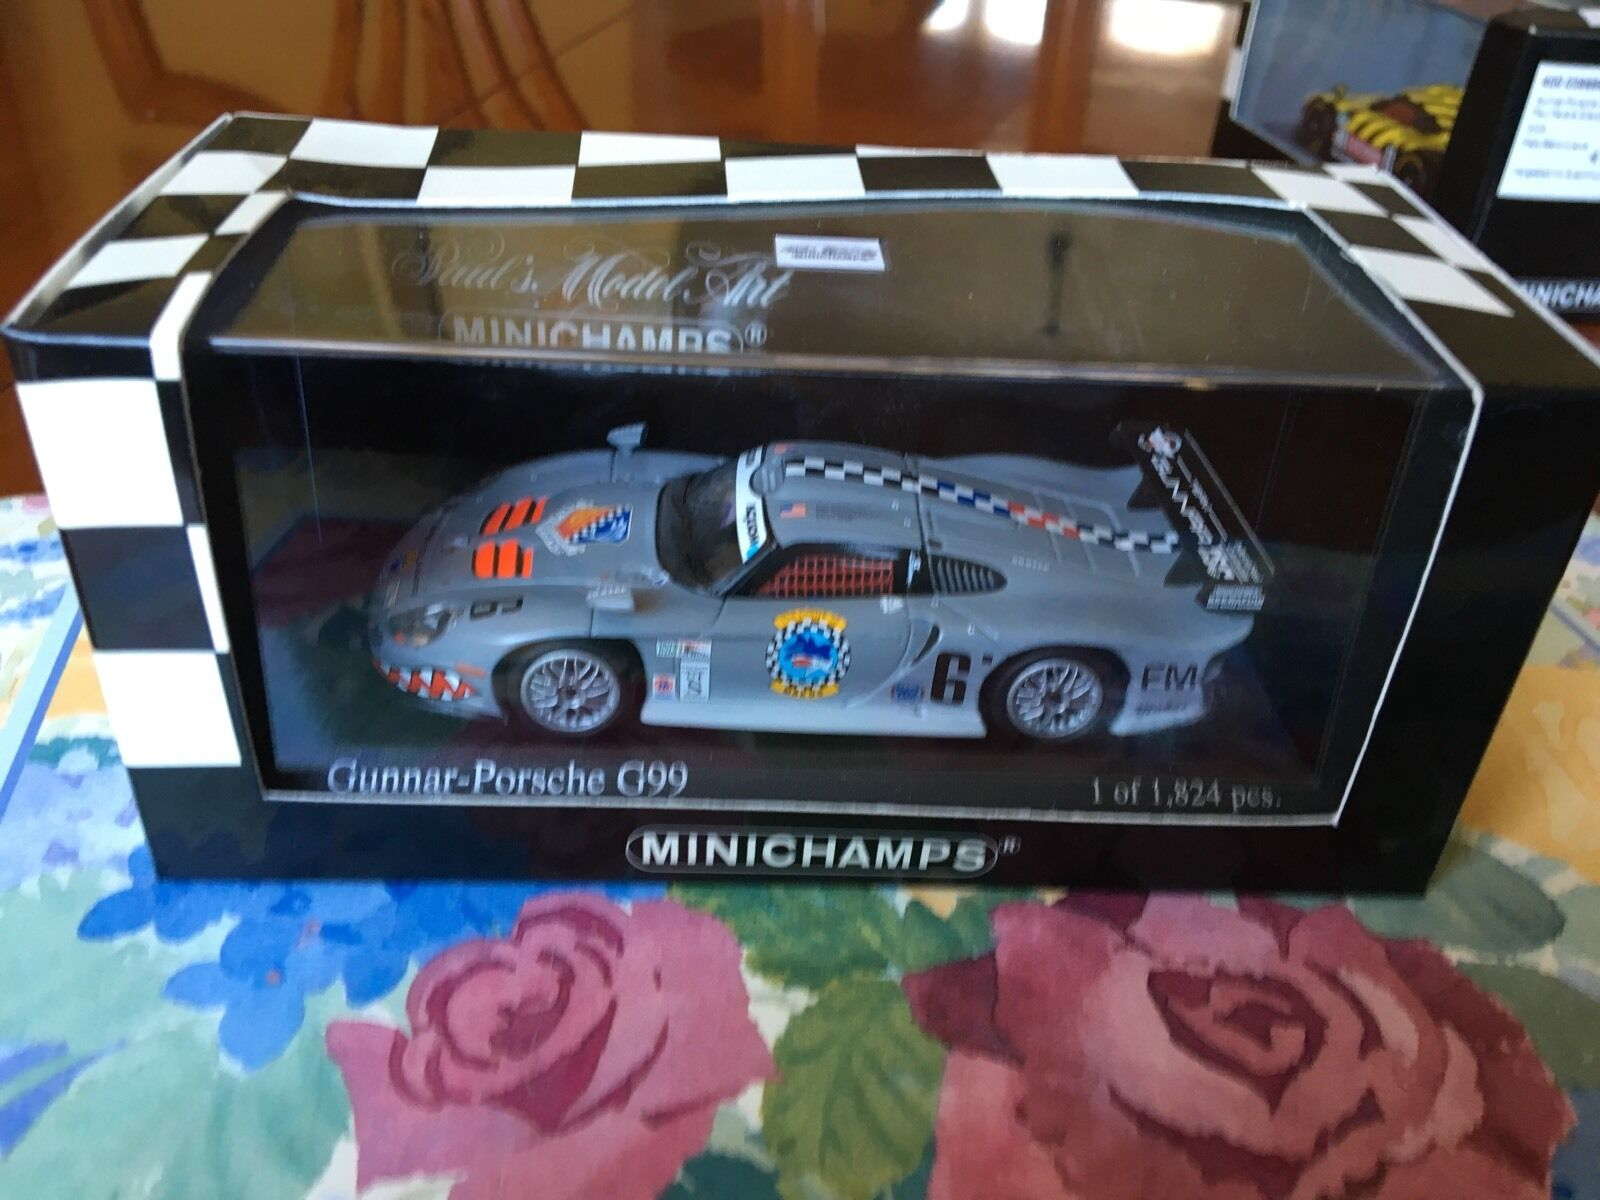 Minichamps Gunner-Porsche G99. Nextel Grand Prix, Miami 2003. In 1 43 scale